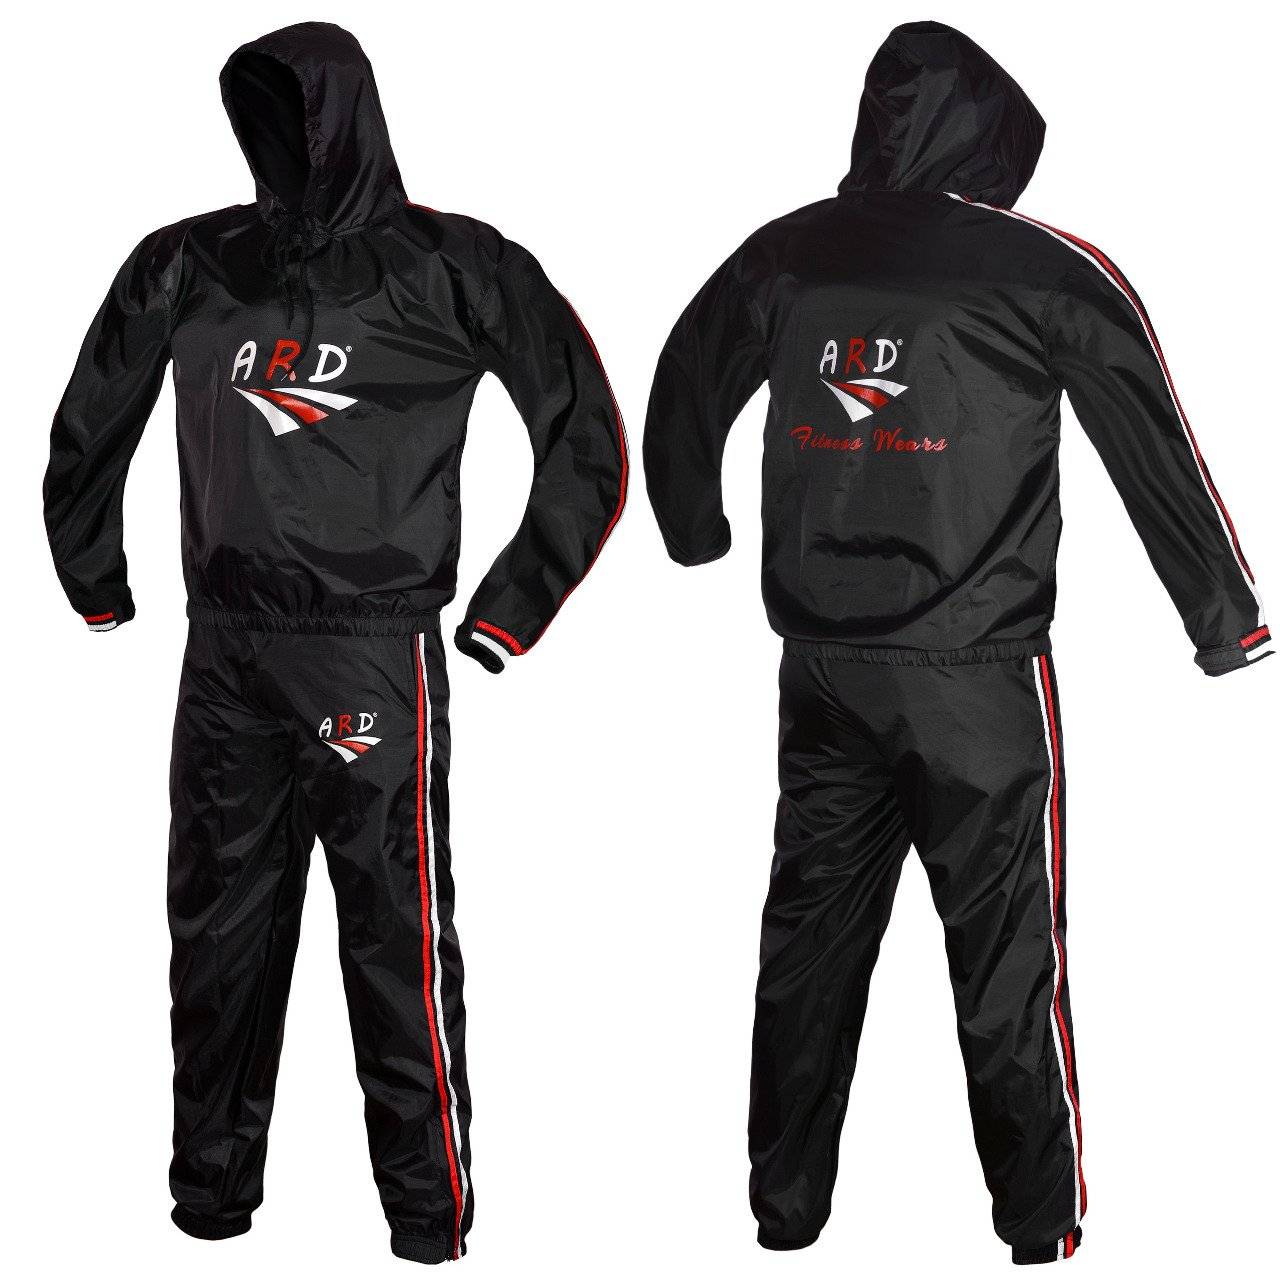 ARD Heavy Duty Sweat Suit Sauna Exercise Gym Suit Fitness, Weight Loss, Anti Rip Hooded